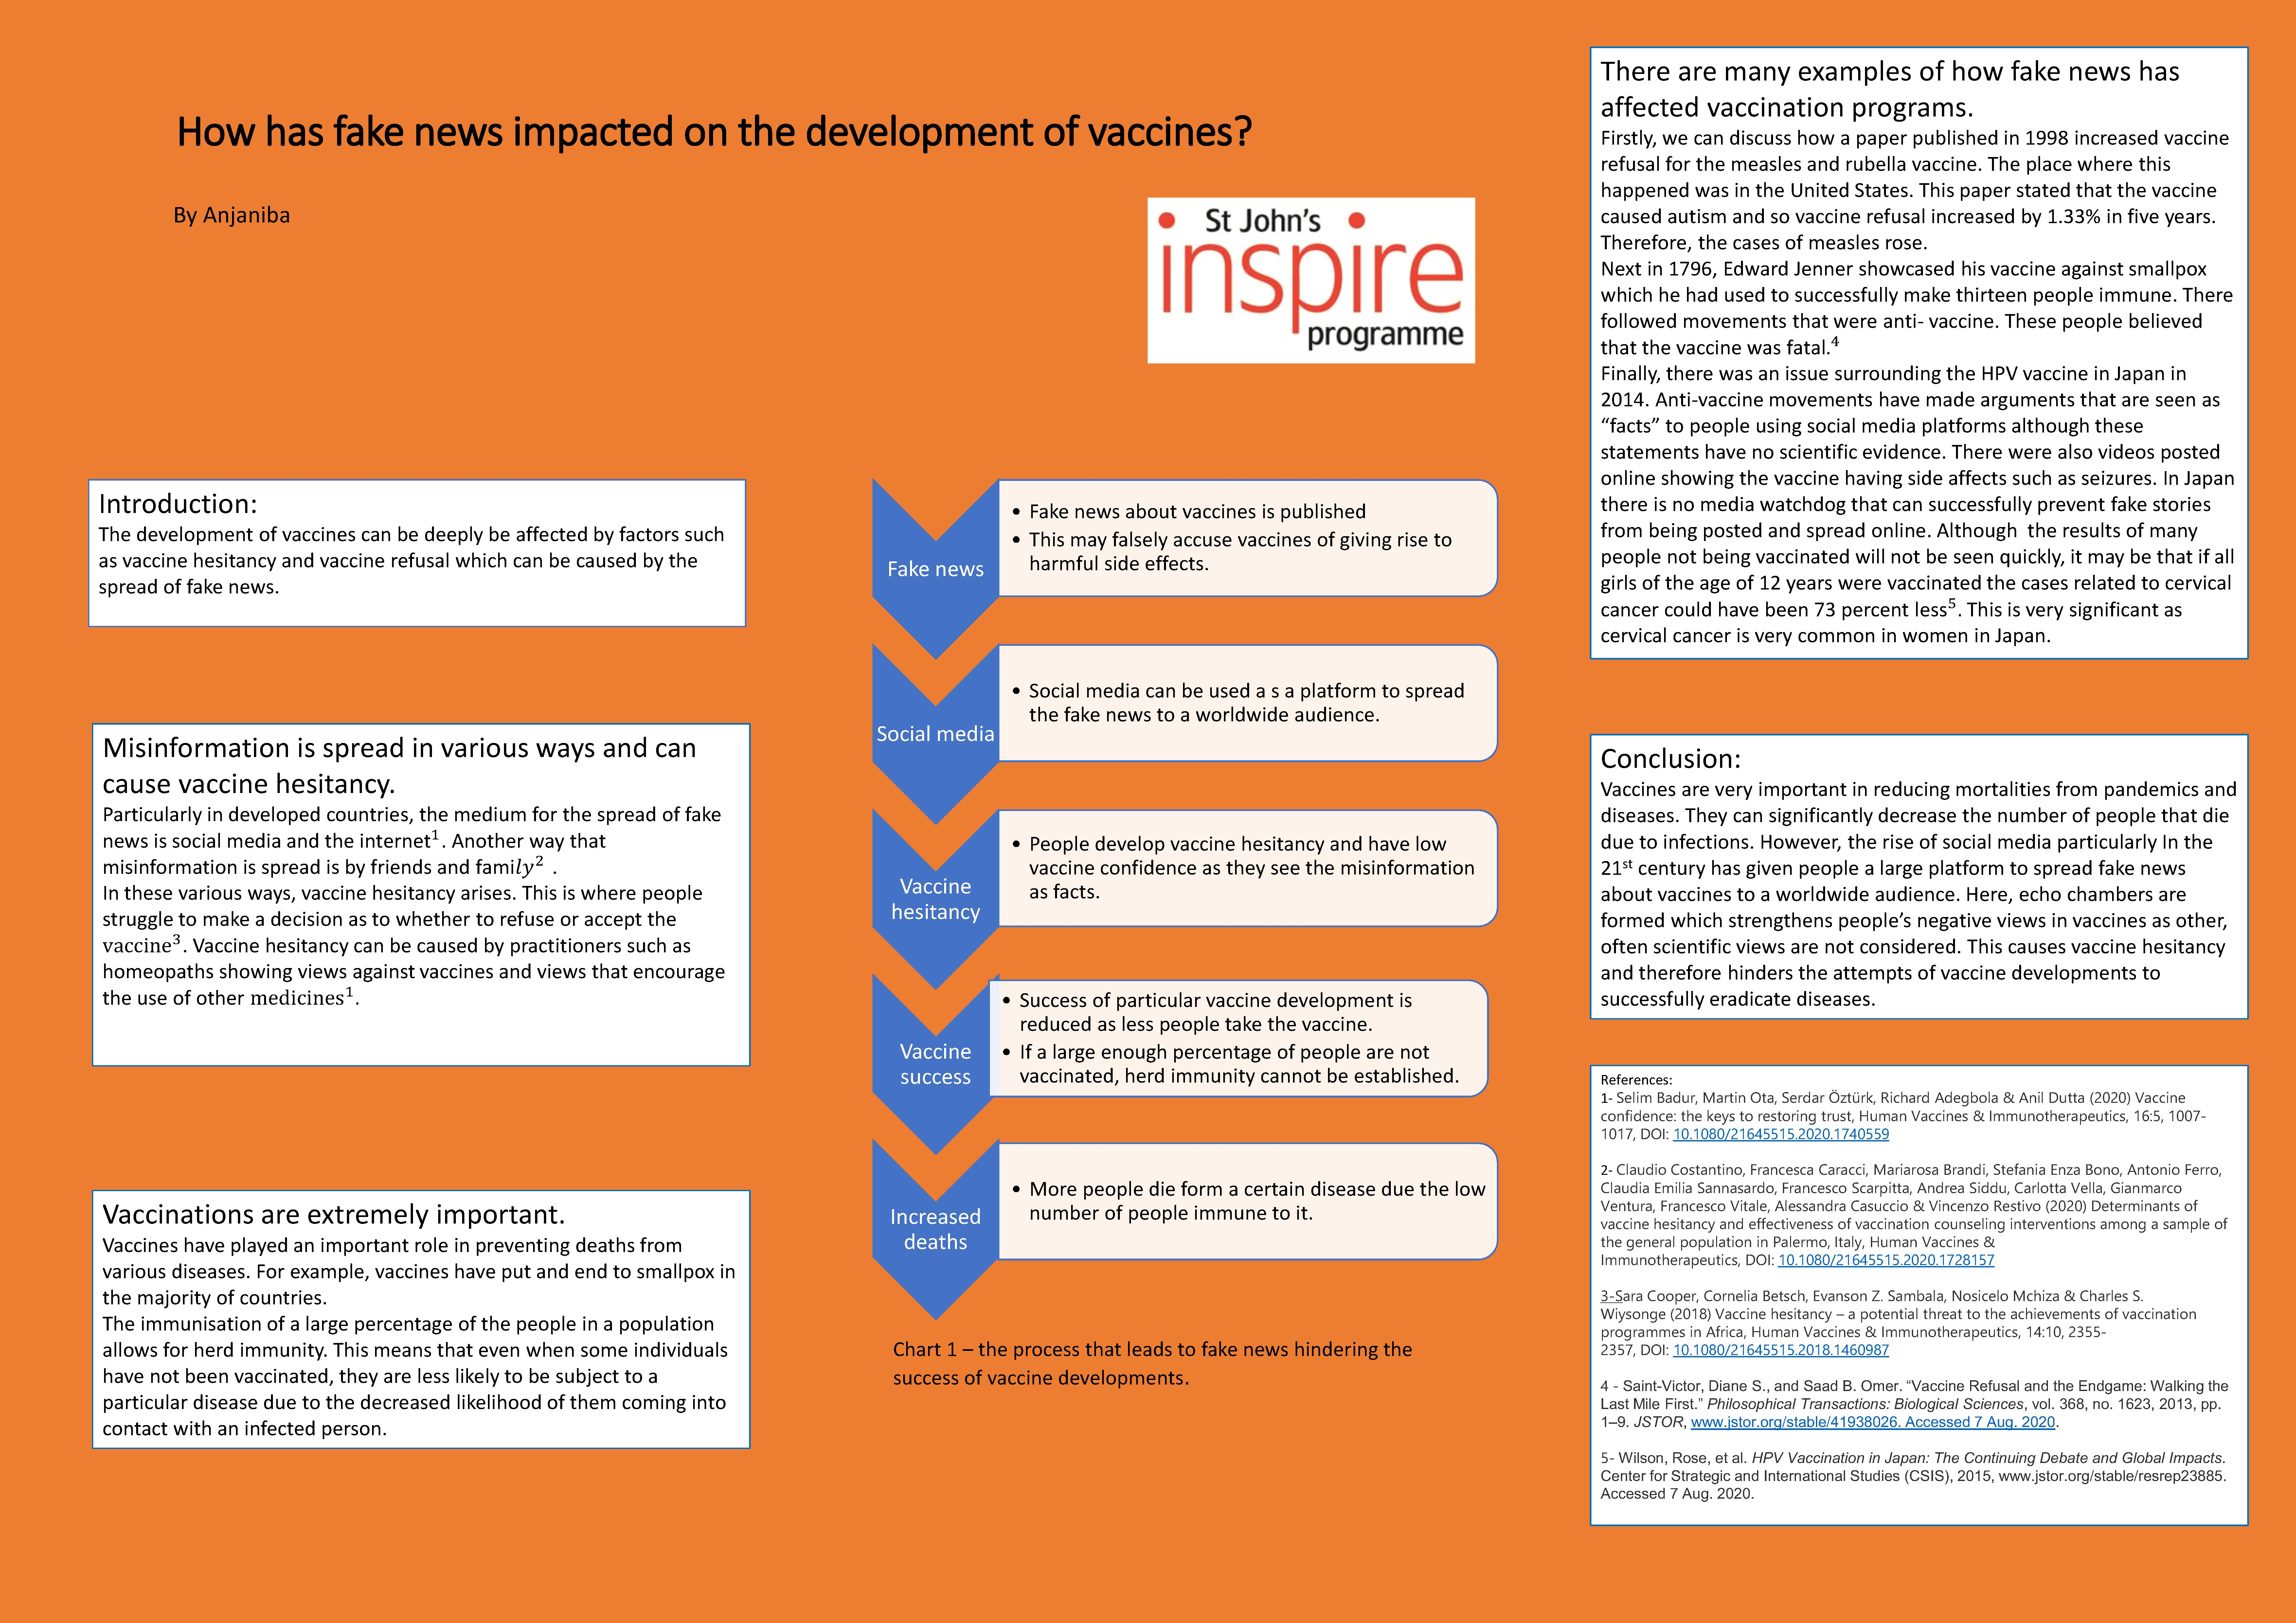 How has fake news impacted on the development of vaccines? (Academic Poster Project by Anjaniba)